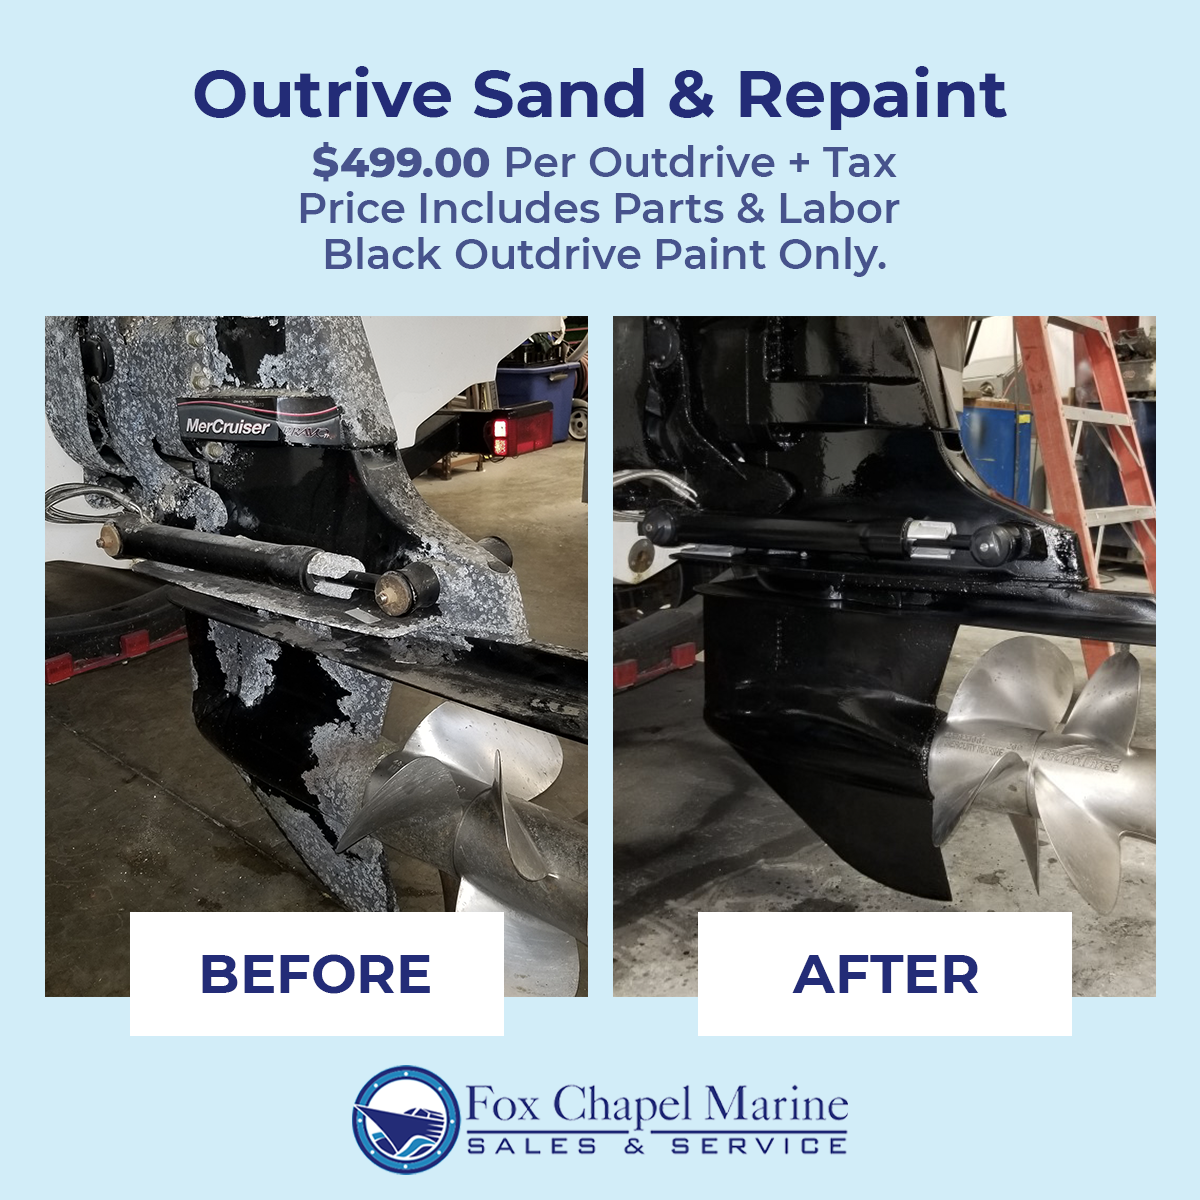 Outdrive Sand & Repaint